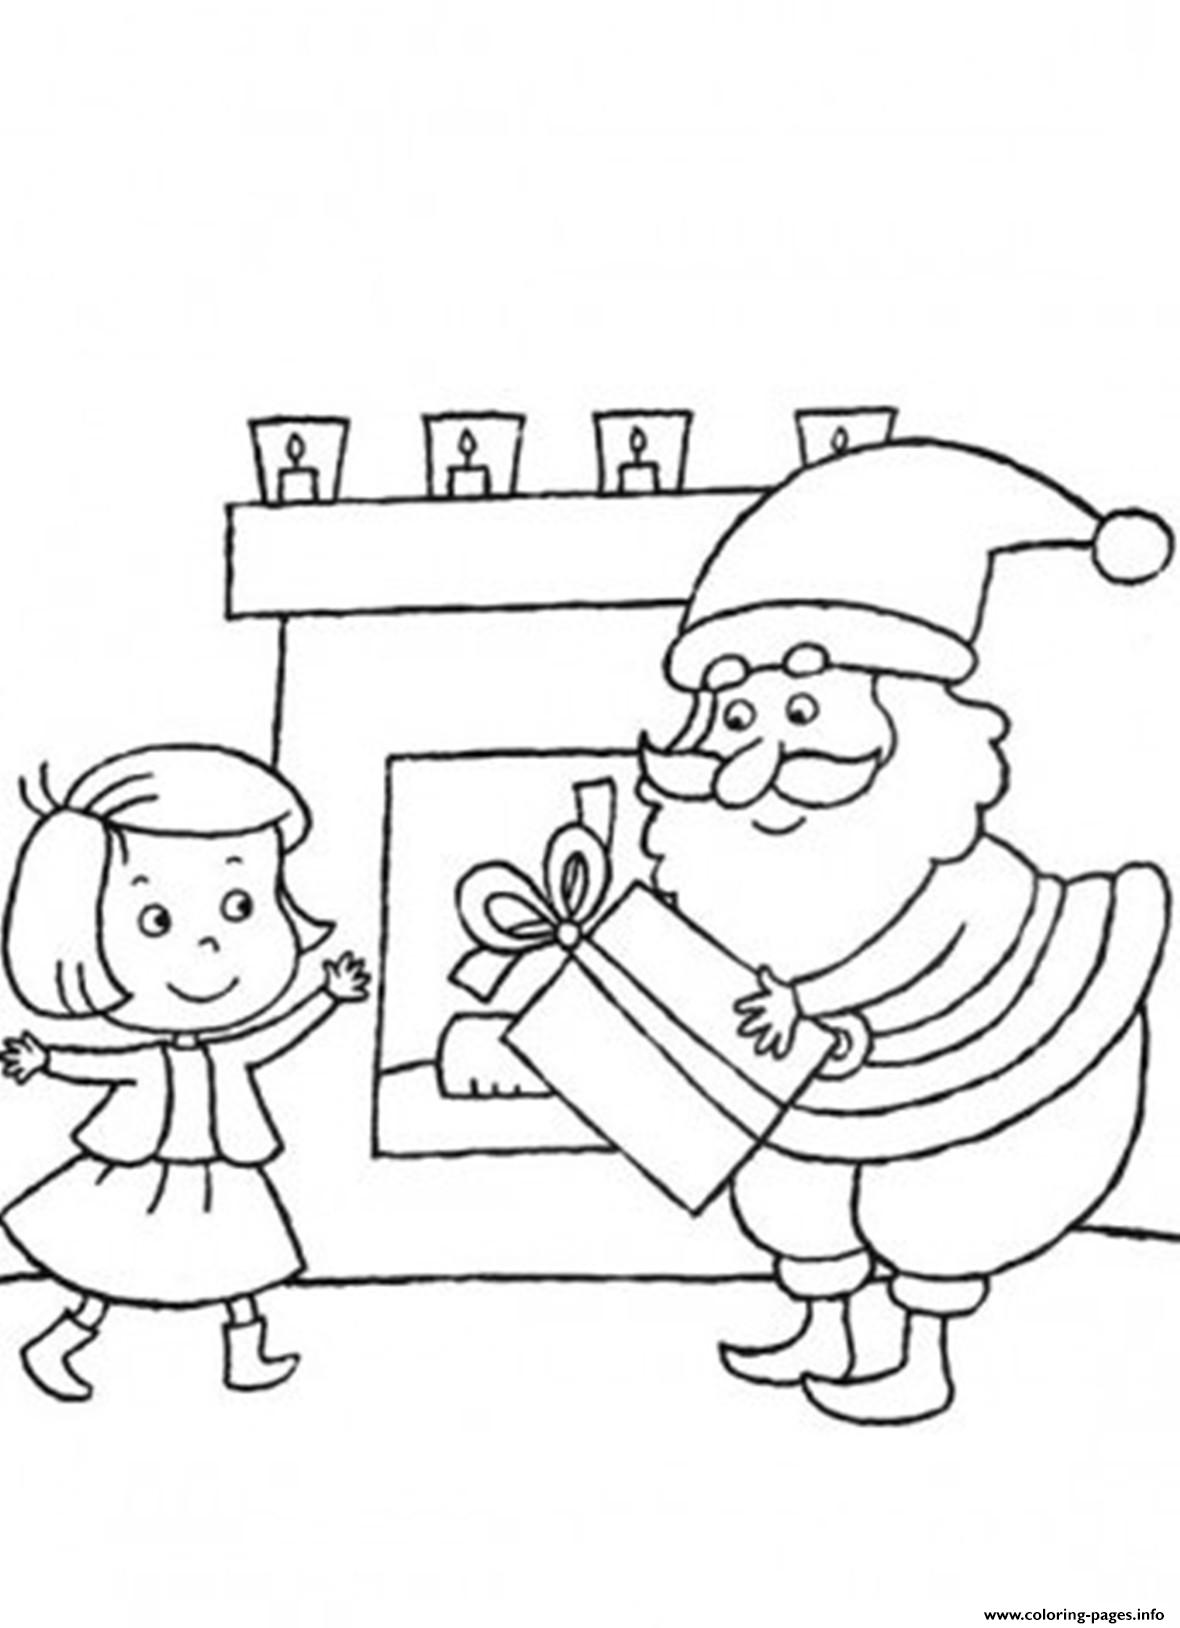 Santa Girl Coloring With Christmas S Delivering Gift For Little Girl84e1 Pages